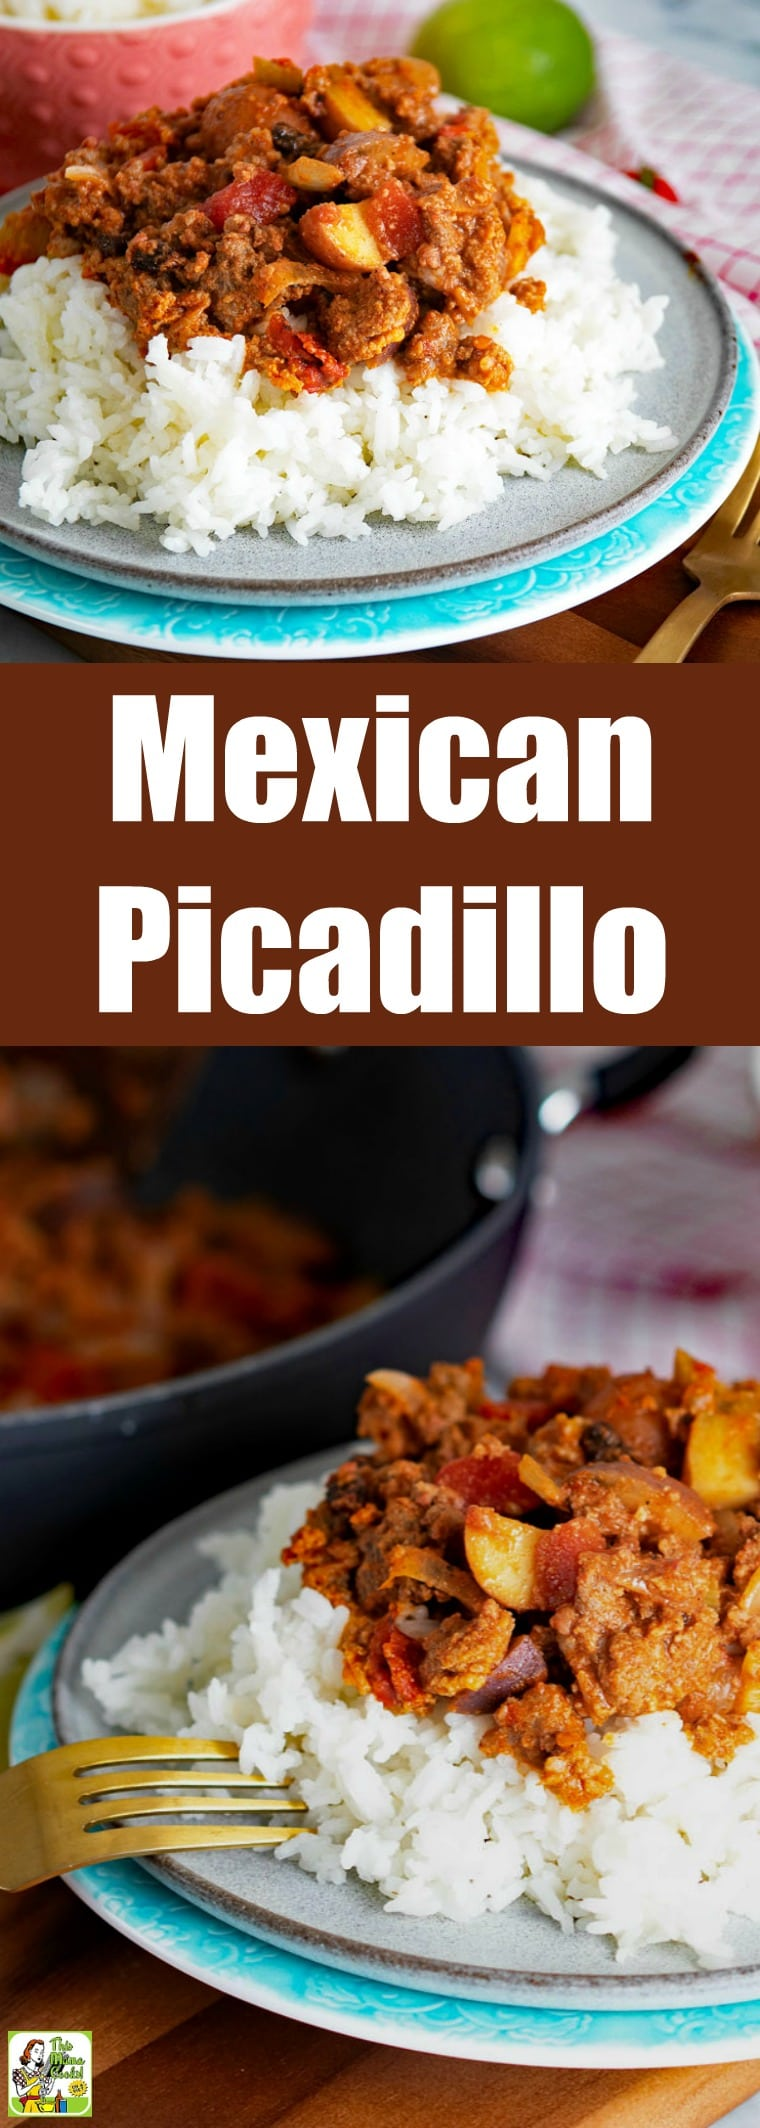 This version of Mexican Picadillo is easy to make with ingredients like ground beef, chorizo, potatoes, celery, tomatoes, and raisins. This gluten free dinner recipe can be served on rice. #groundbeef #rice #mexicanfoodrecipes #mexicanfood